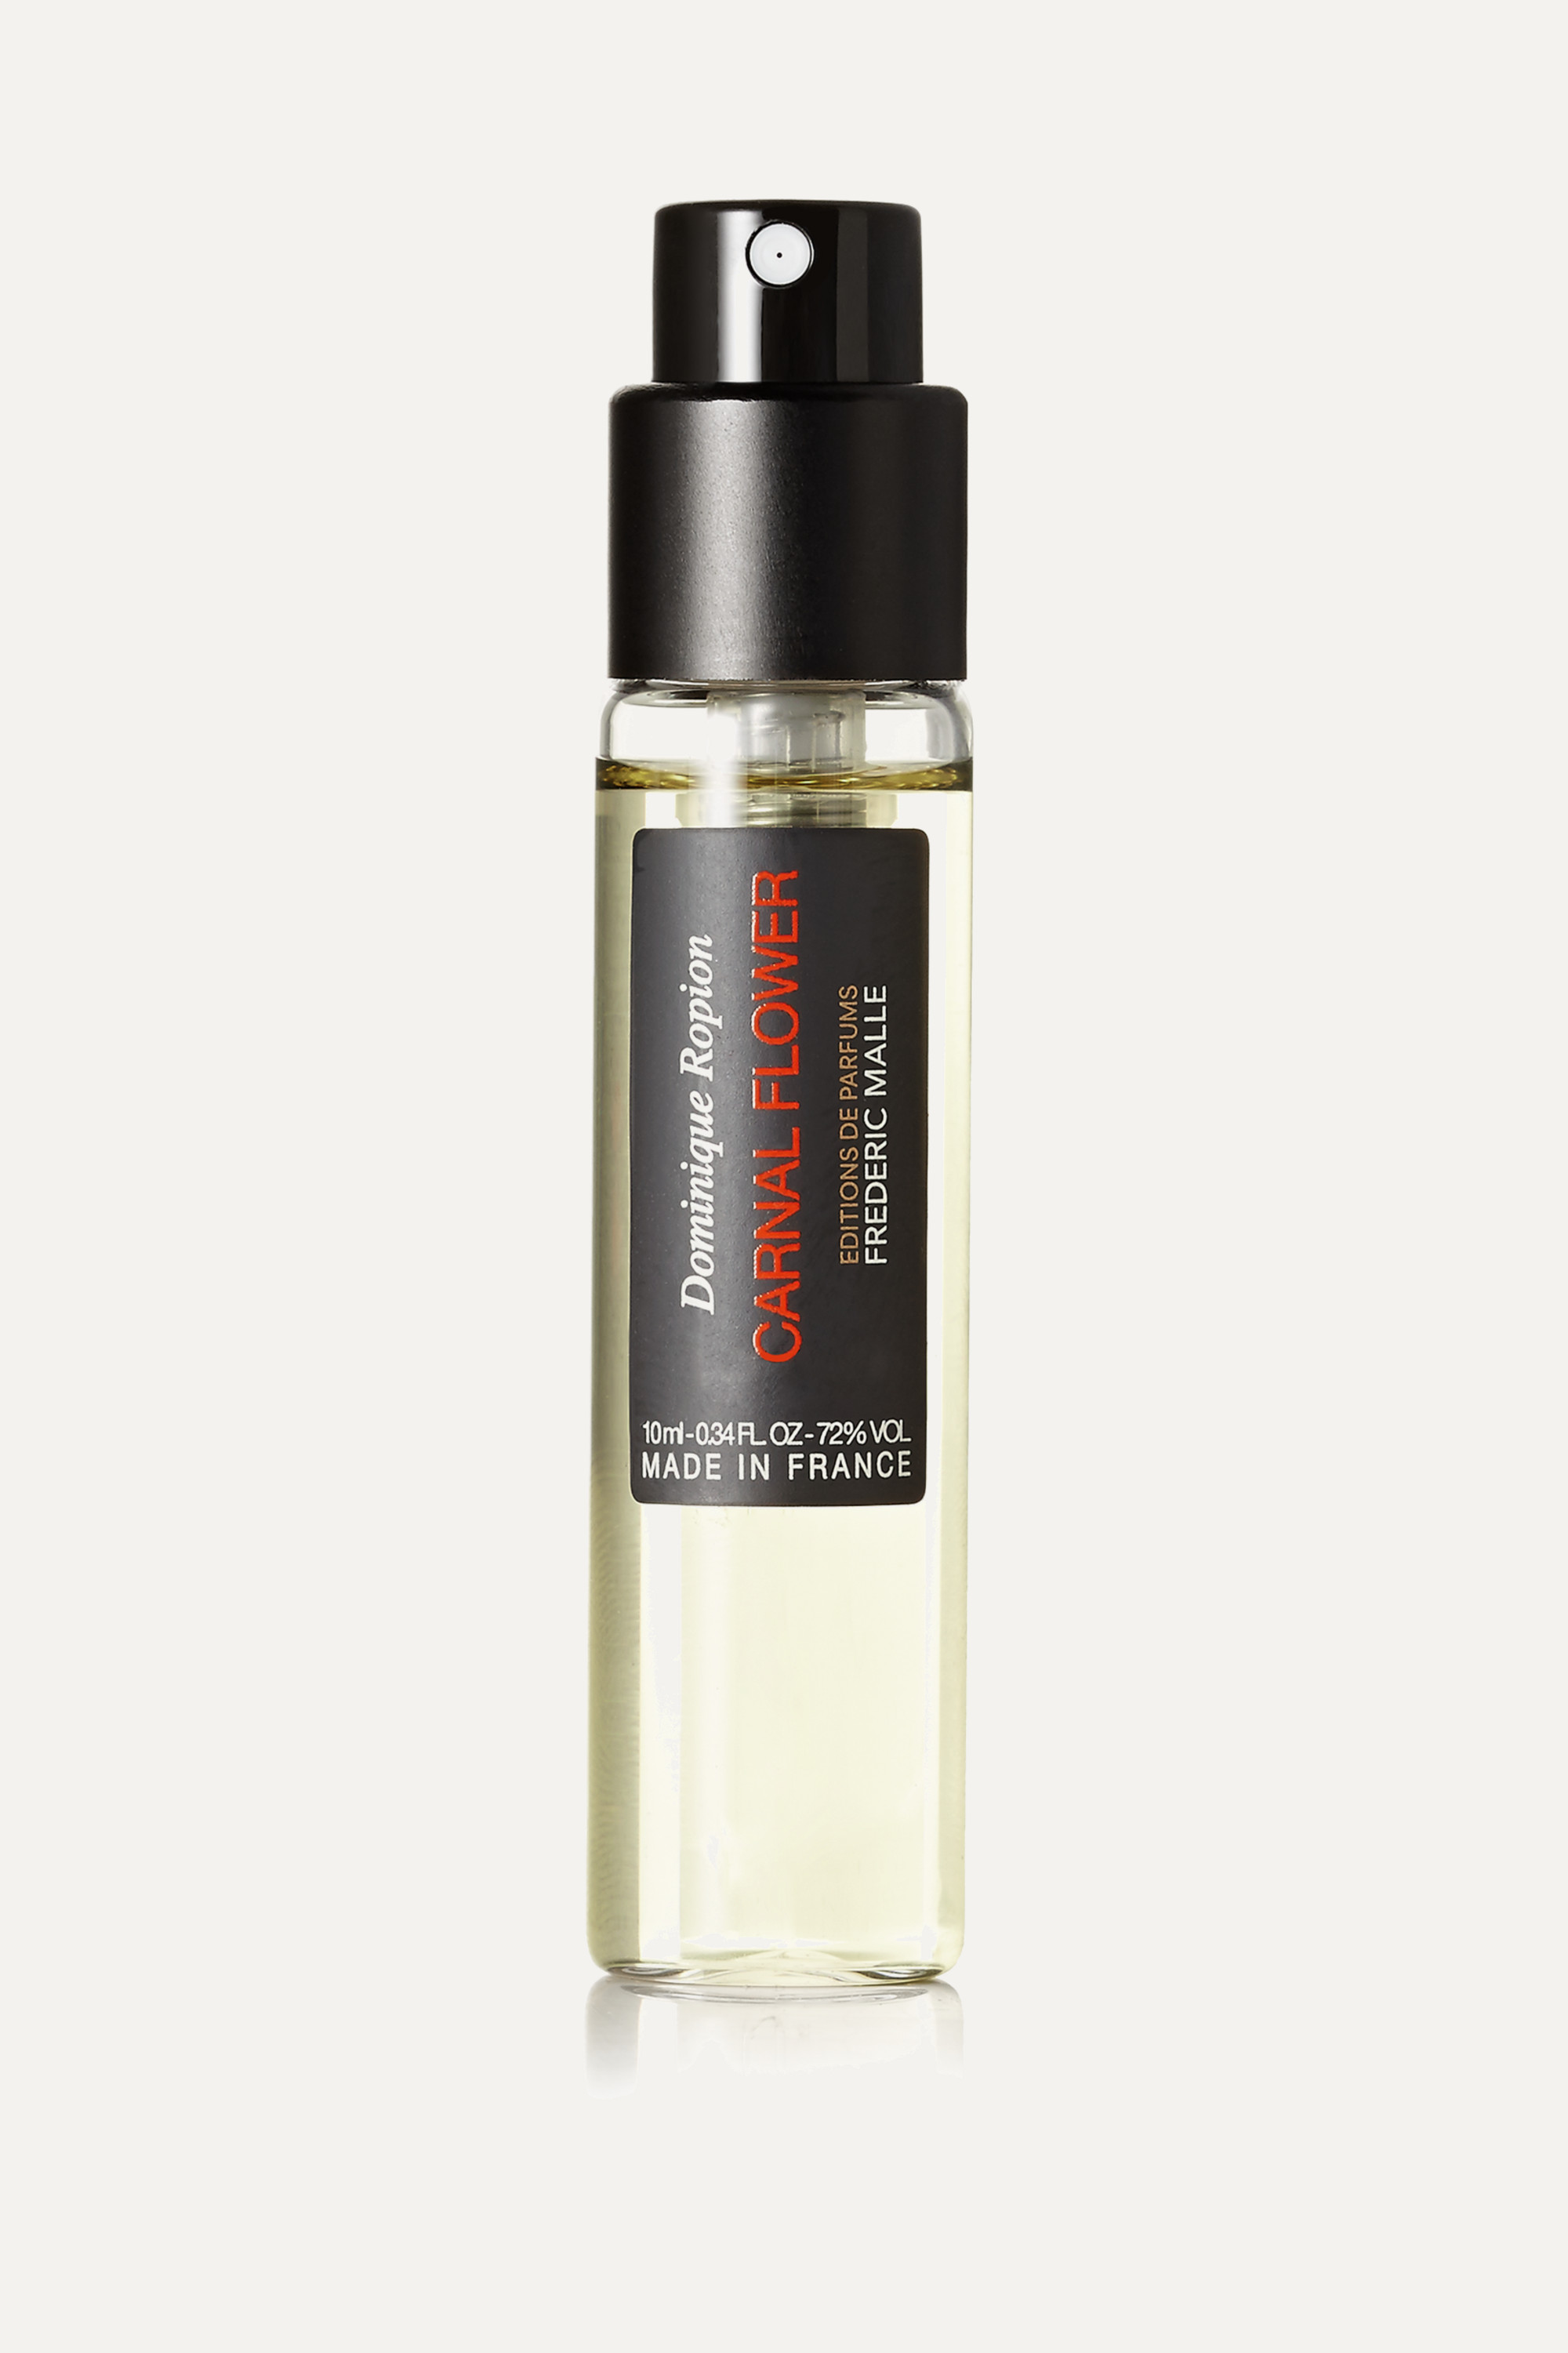 Frederic Malle Carnal Flower Eau de Parfum - Green Notes & Tuberose Absolute, 10ml